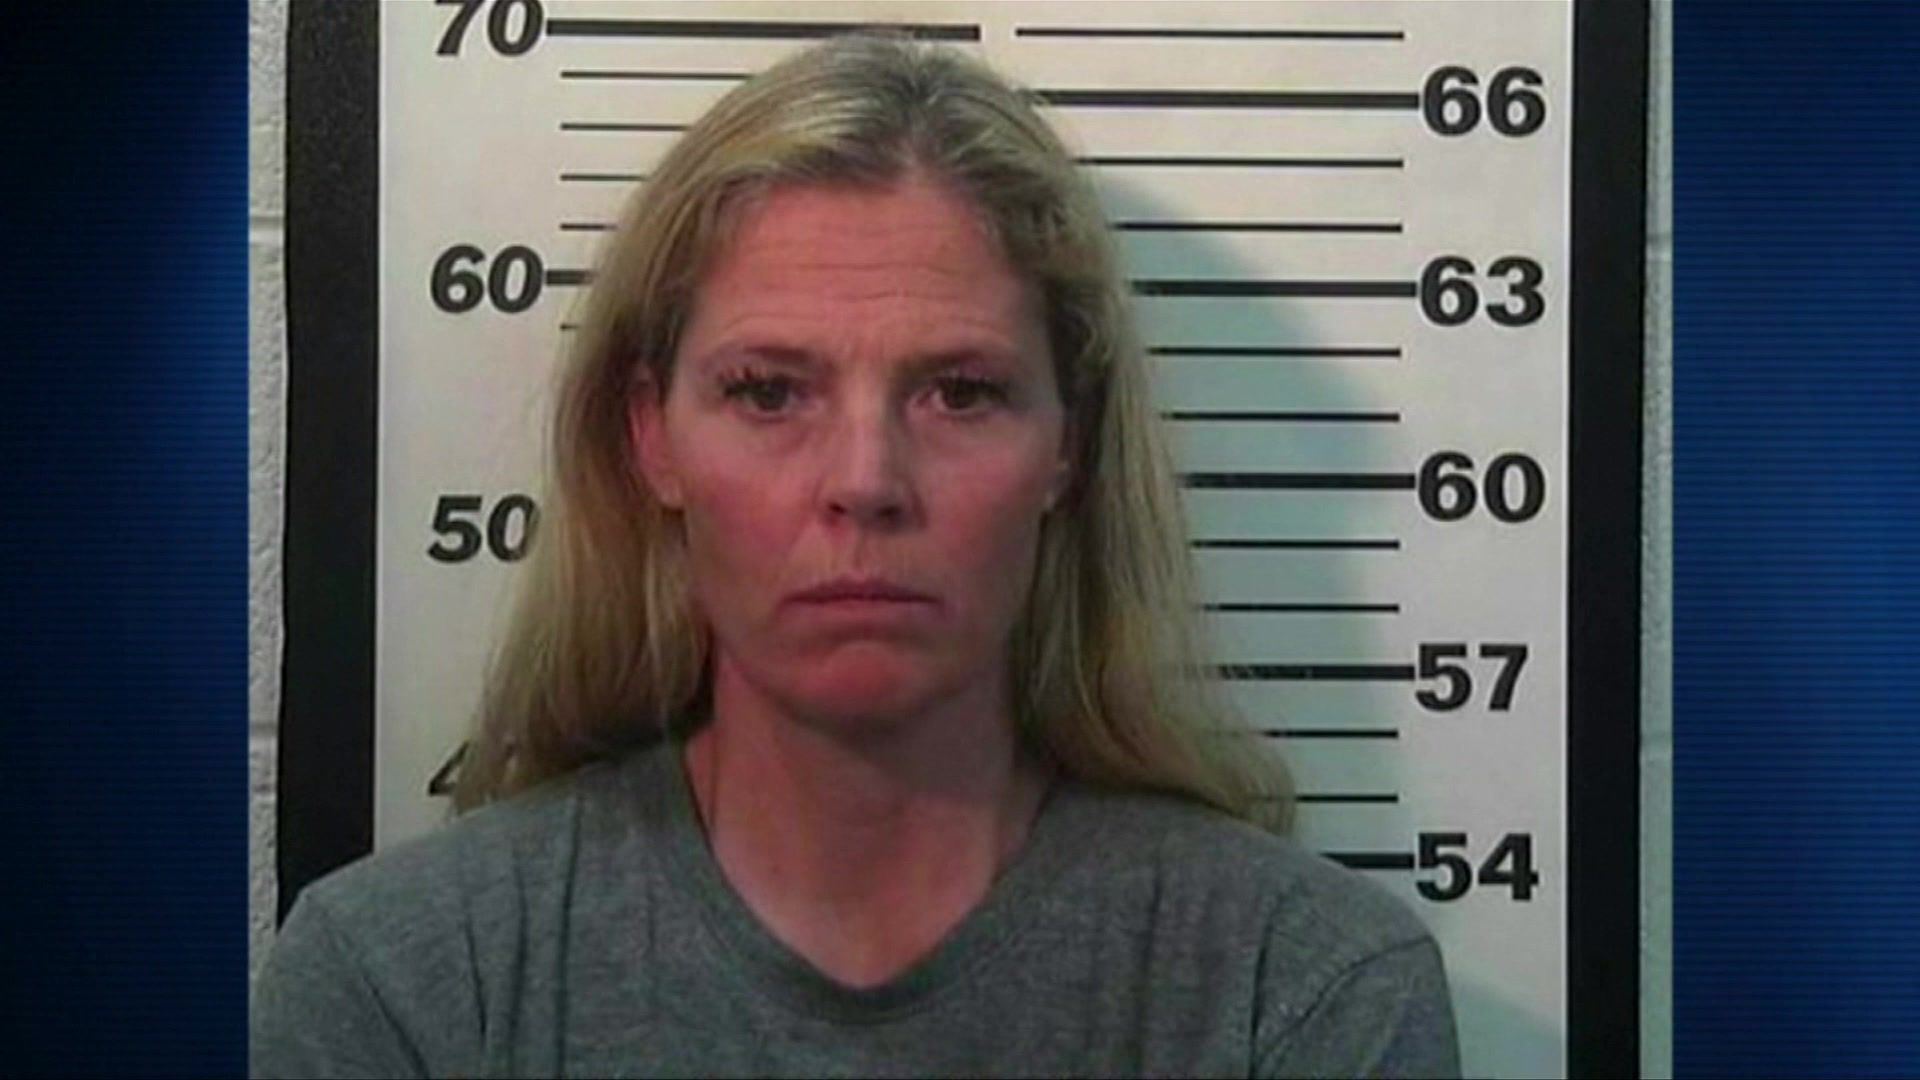 Olympic Gold Medalist Picabo Street Arrested on Assault Charge